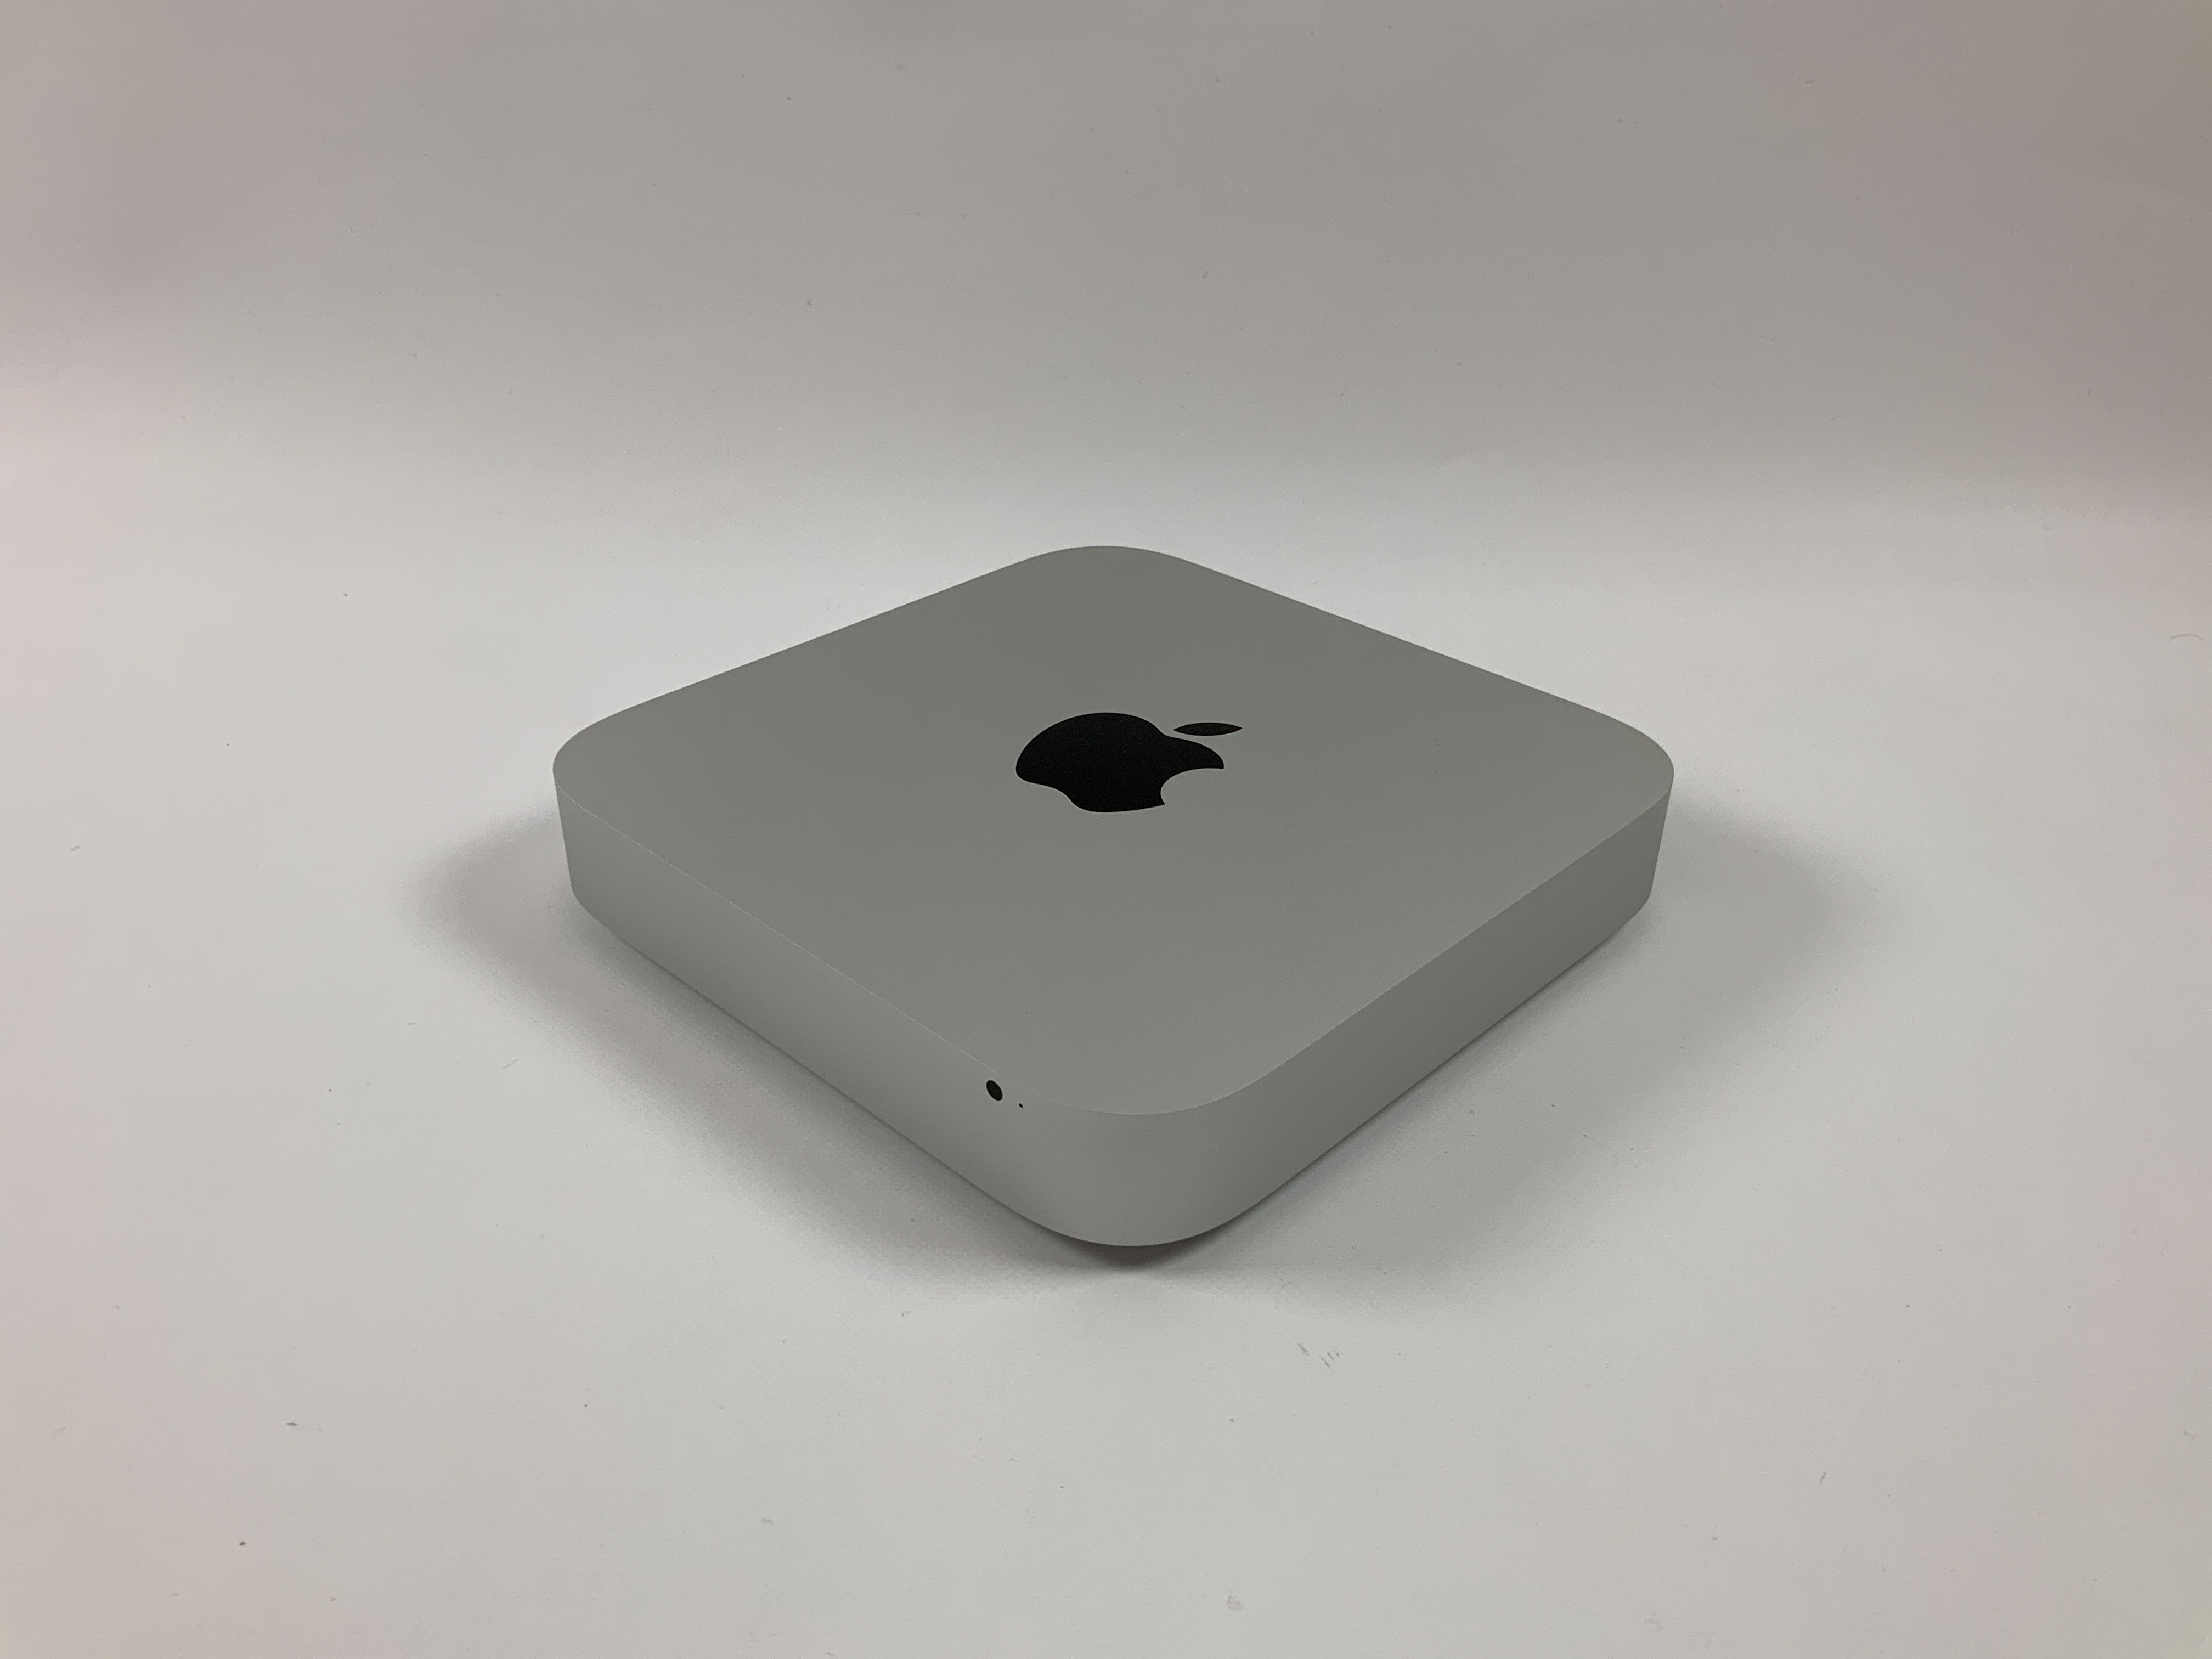 Mac Mini Late 2014 (Intel Core i5 2.6 GHz 8 GB RAM 1 TB HDD), Intel Core i5 2.6 GHz, 8 GB RAM, 1 TB HDD, obraz 2